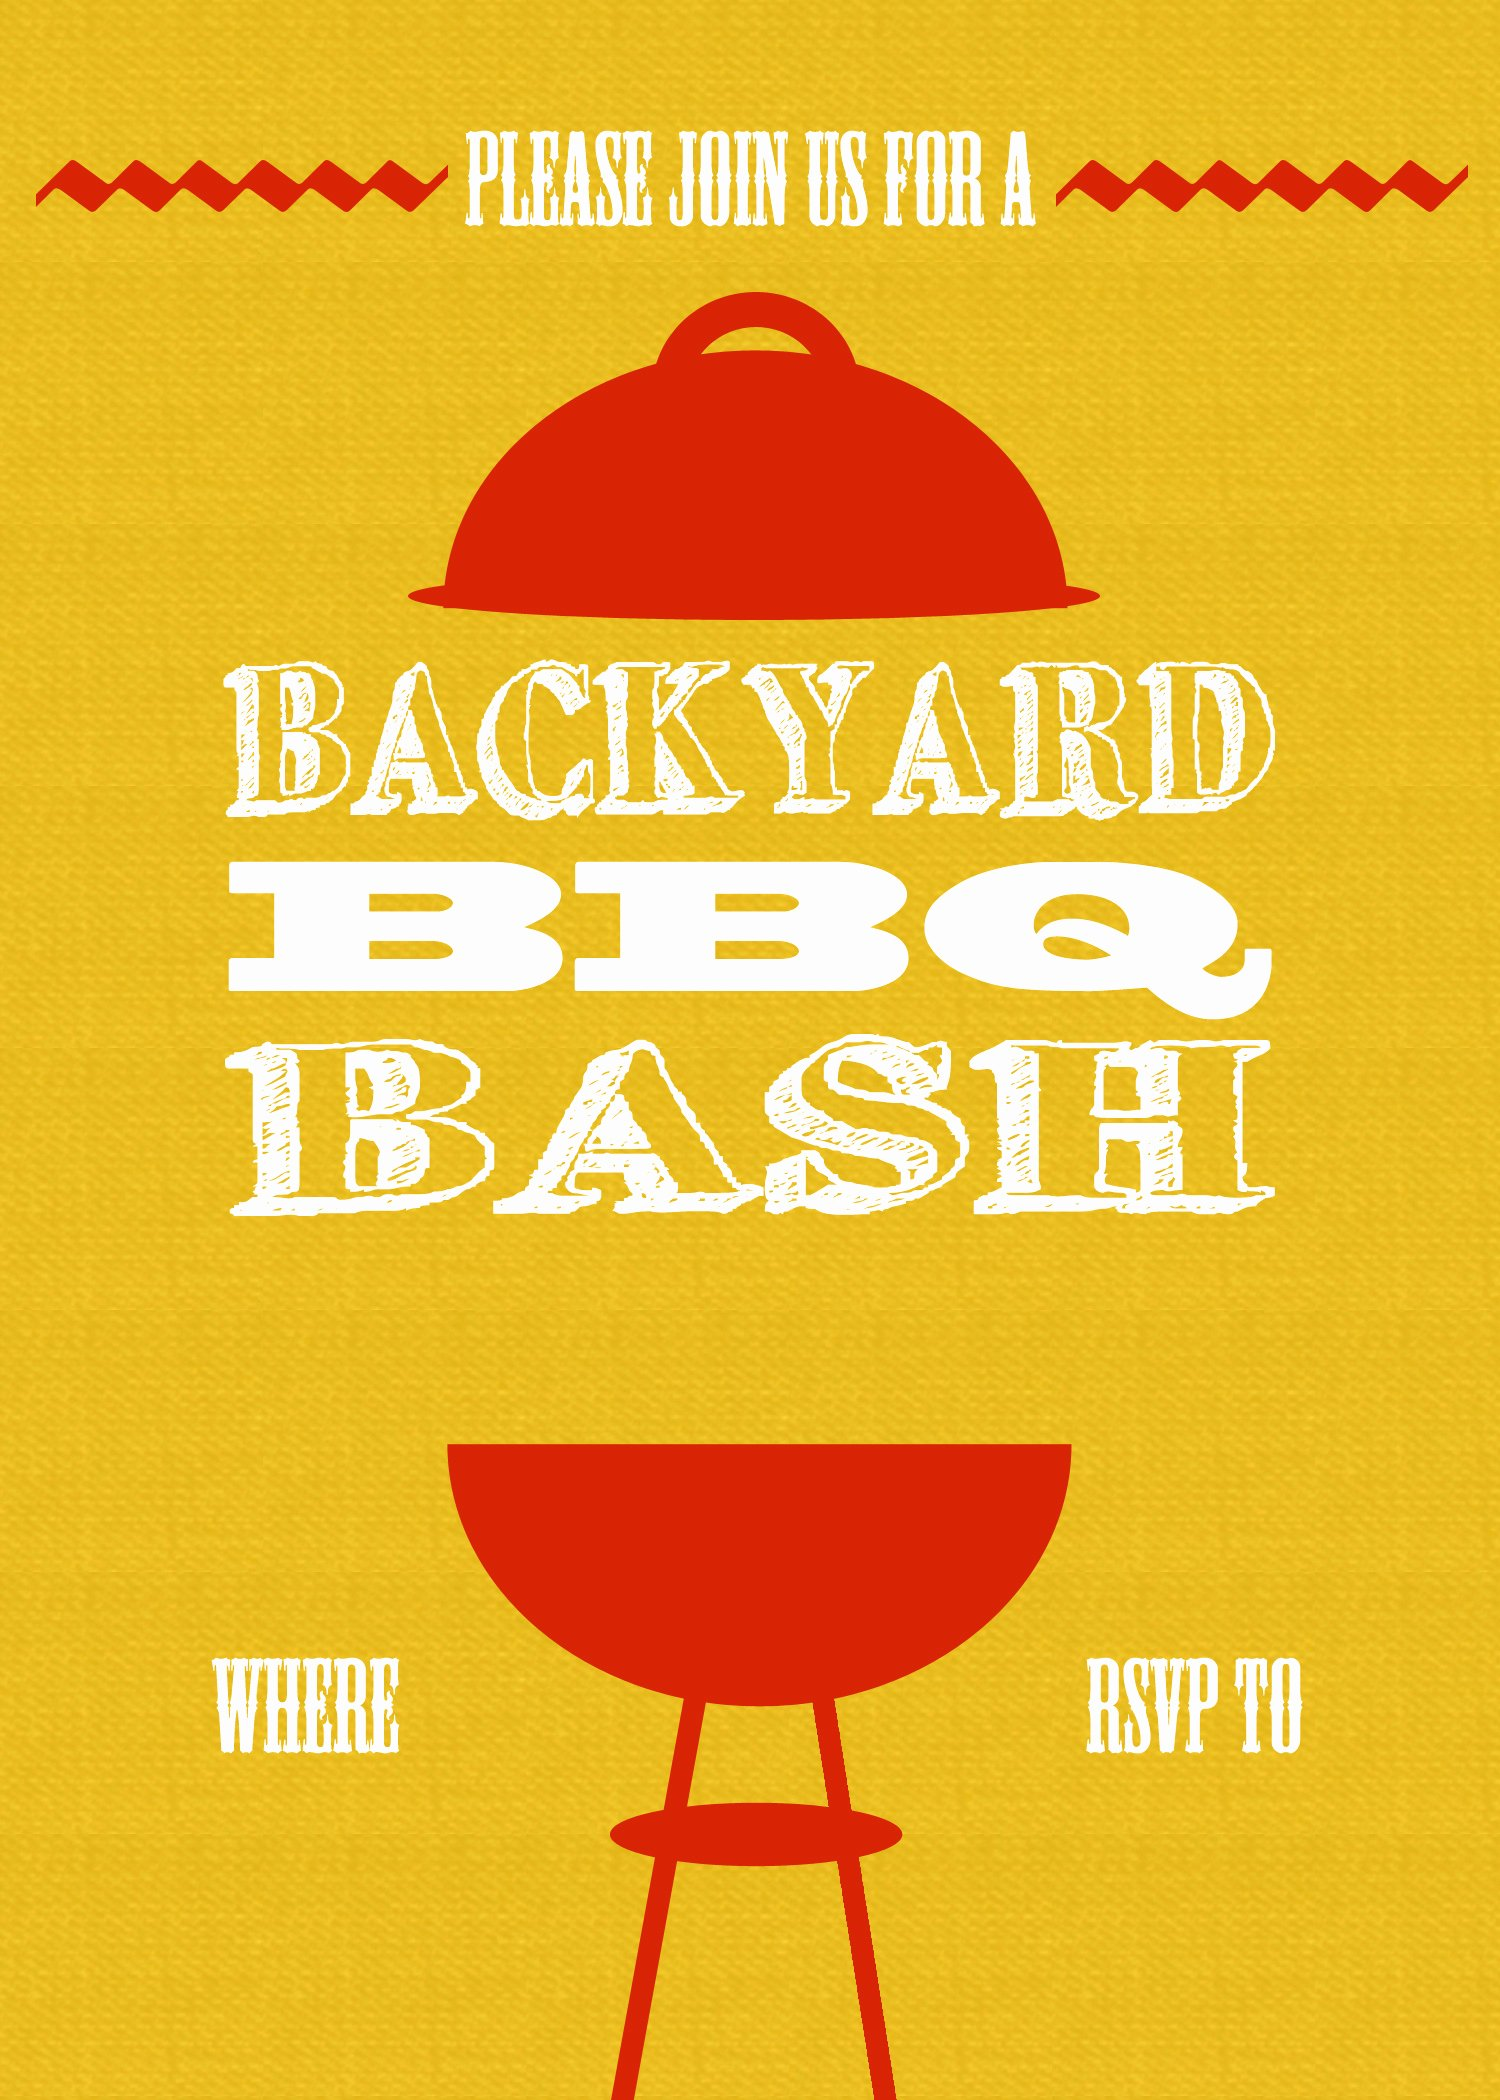 Bbq Invitation Template Word Elegant Diy Printable Backyard Bbq Bash Invite